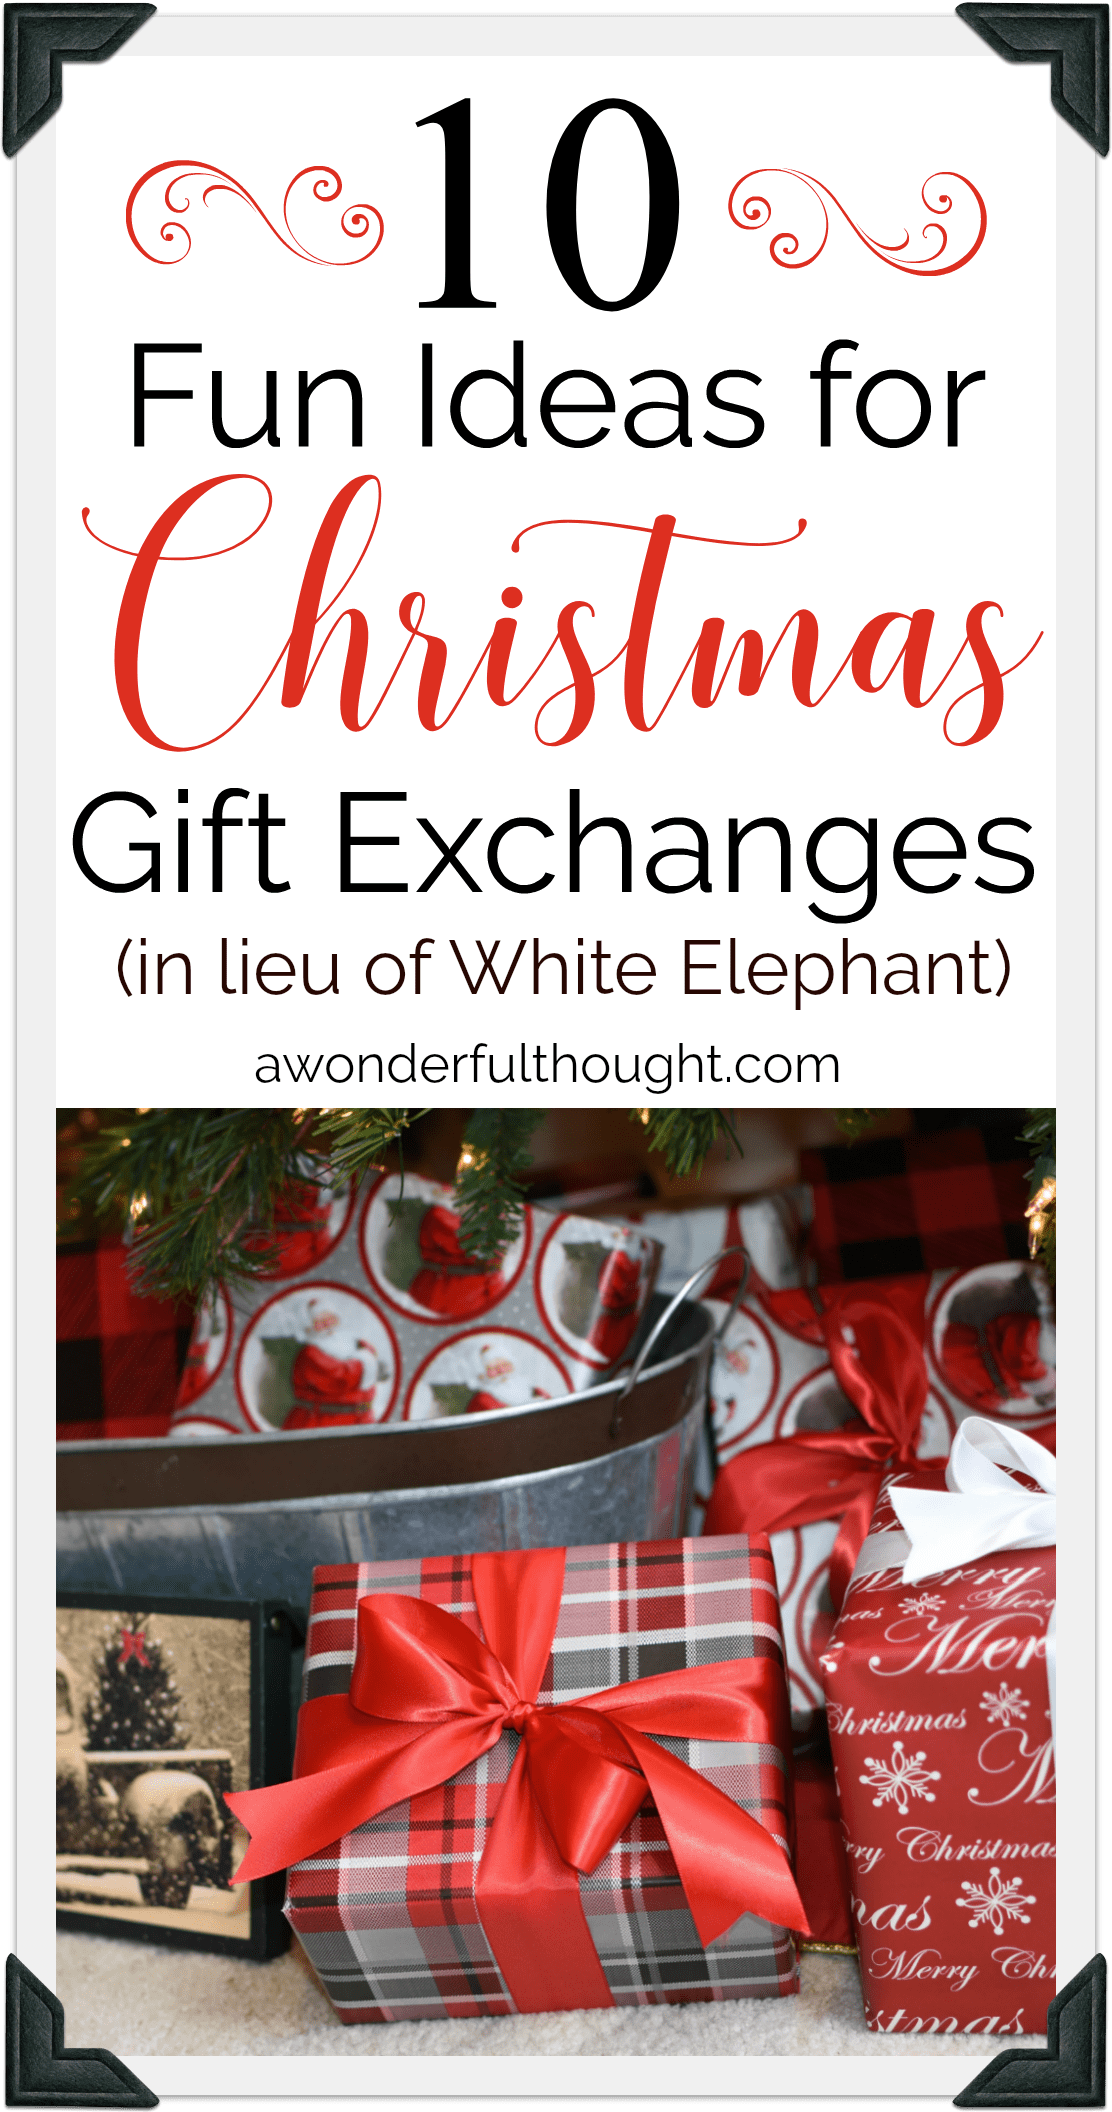 Christmas Gift Exchange Ideas A Wonderful Thought Christmas Gift Exchange Games Christmas Gifts For Adults Christmas Gift Exchange